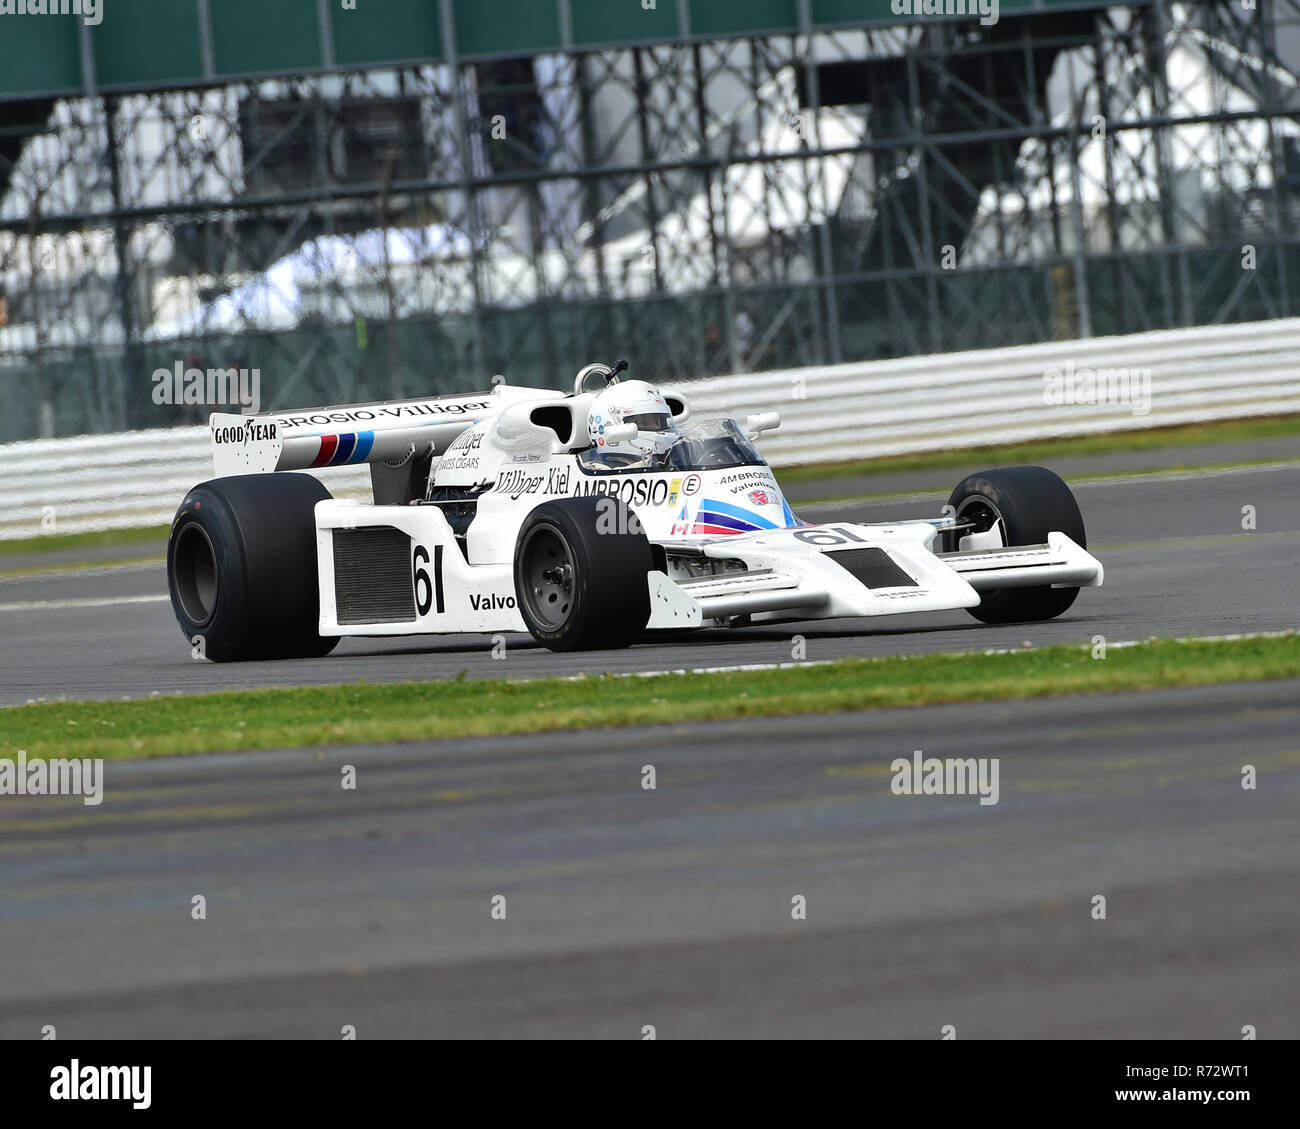 Jason Wright, Shadow DN8, FIA, Masters Historic Formula One, Silverstone Classic 2016, 60's cars, Chris McEvoy, cjm-photography, Classic Racing Cars,  - Stock Image